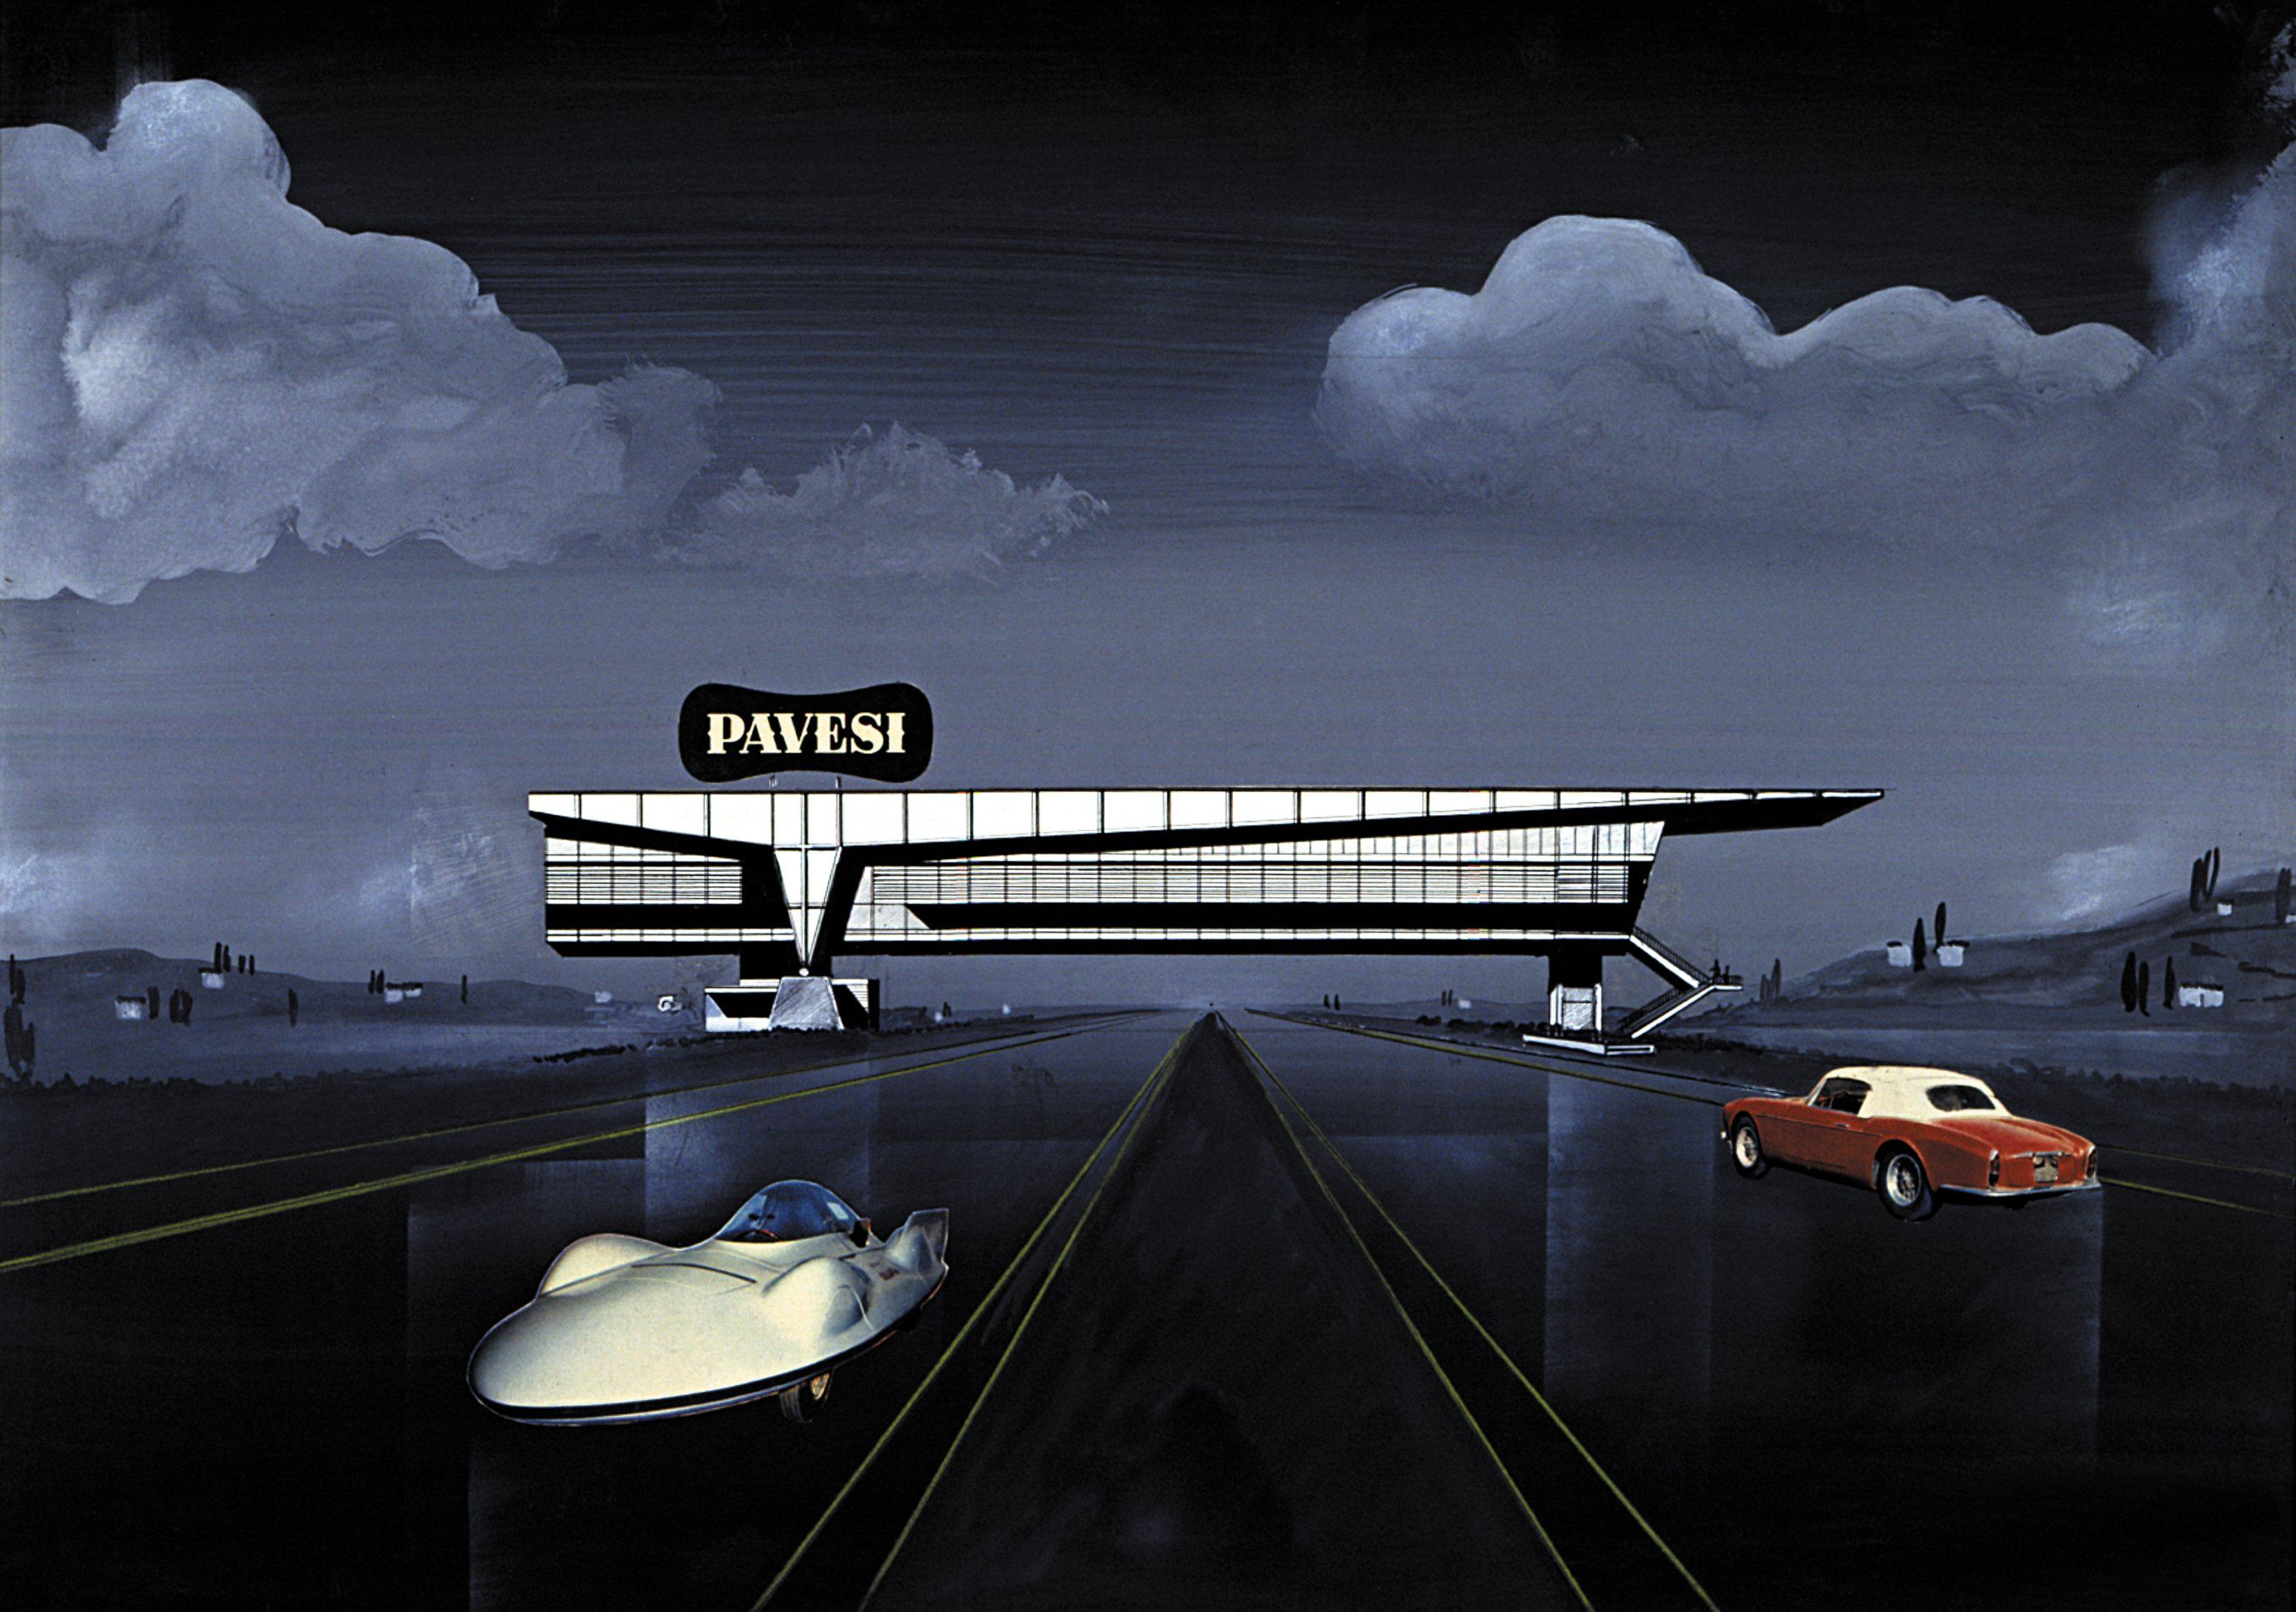 autogrill2.jpg (2708×1901) Drawing for Restaurant Bridge over a highway, Italy 1960s